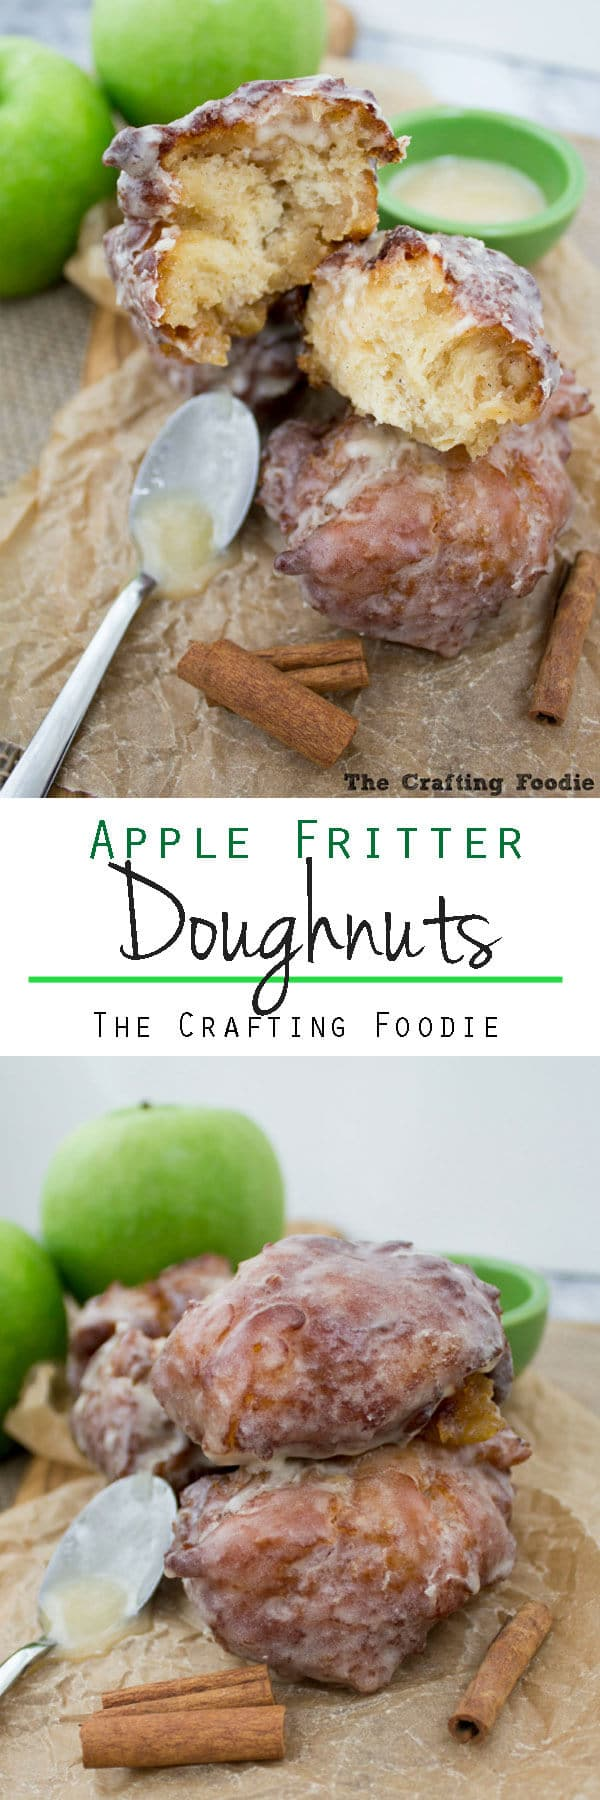 fresh apple fritter doughnuts covered with glaze